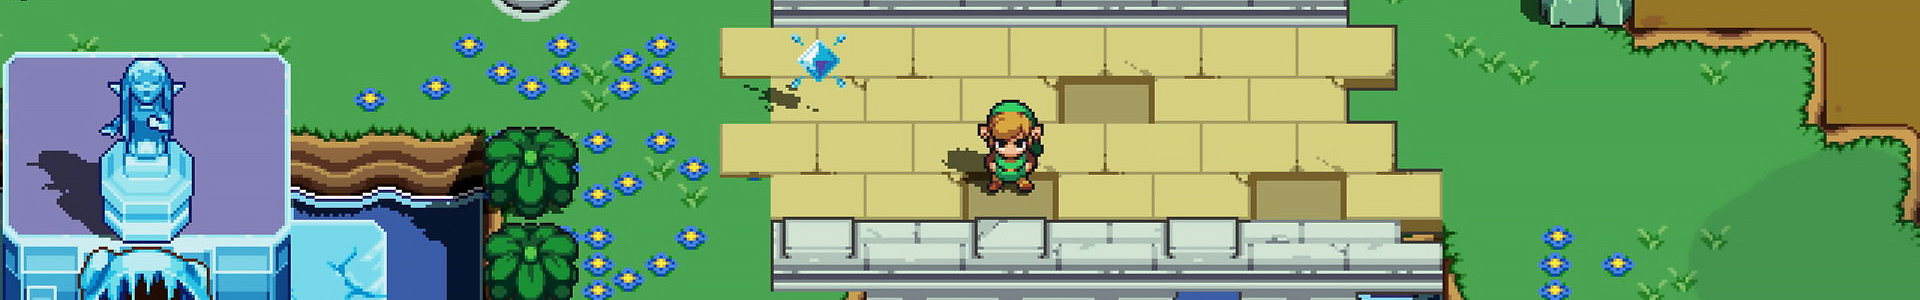 cadence-of-hyrule-crypt-of-the-necrodancer-featuring-the-legend-of-zelda-banner